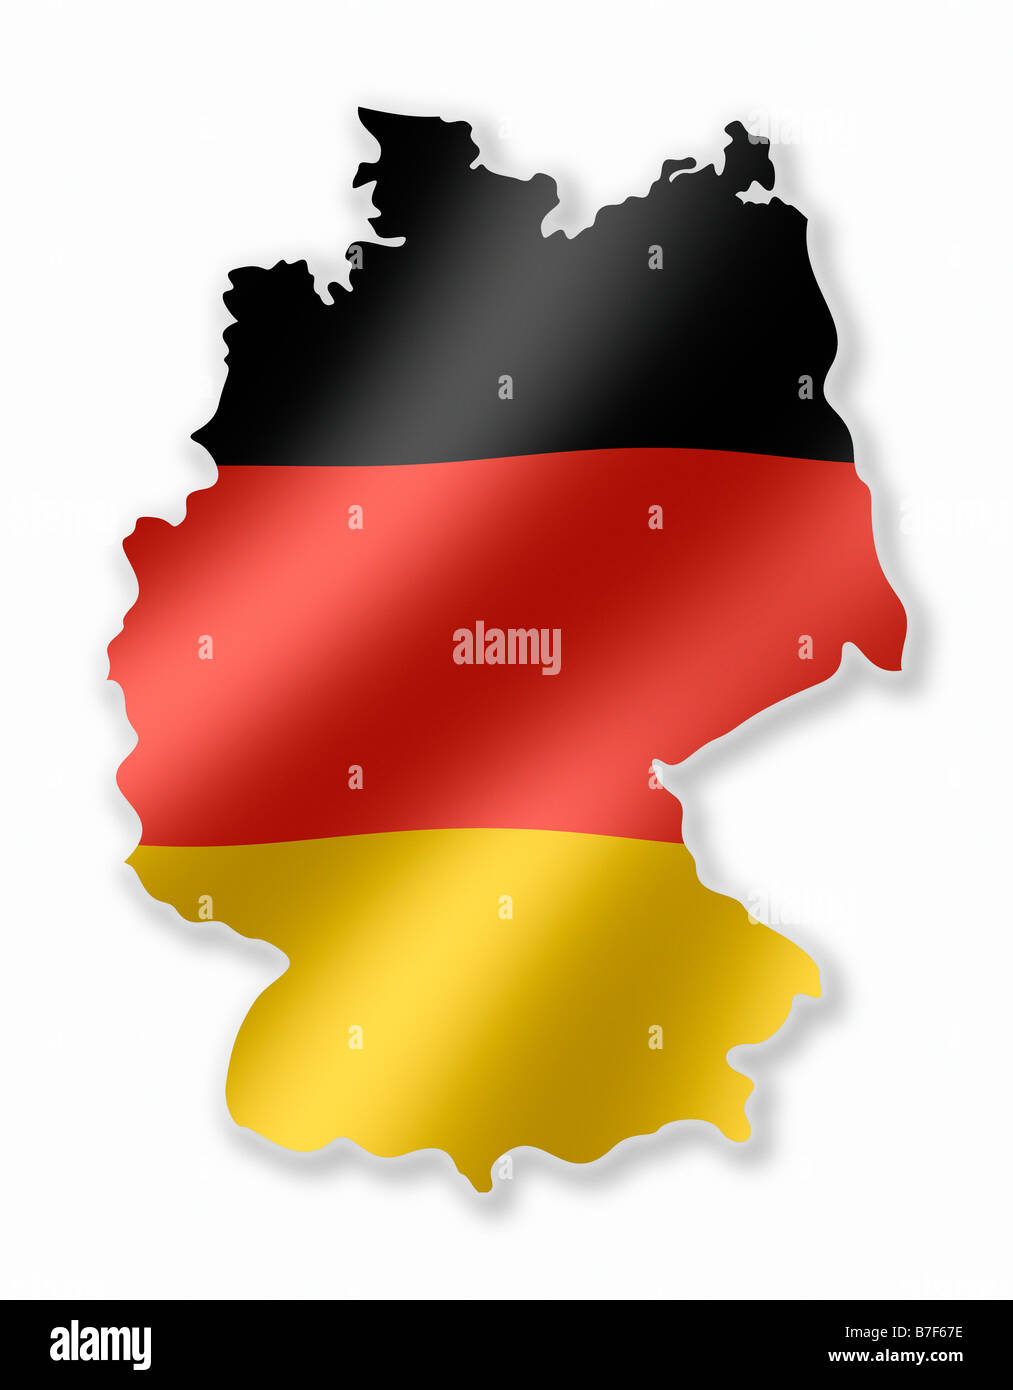 German Country Map Stock Photos German Country Map Stock Images - Germany map outline